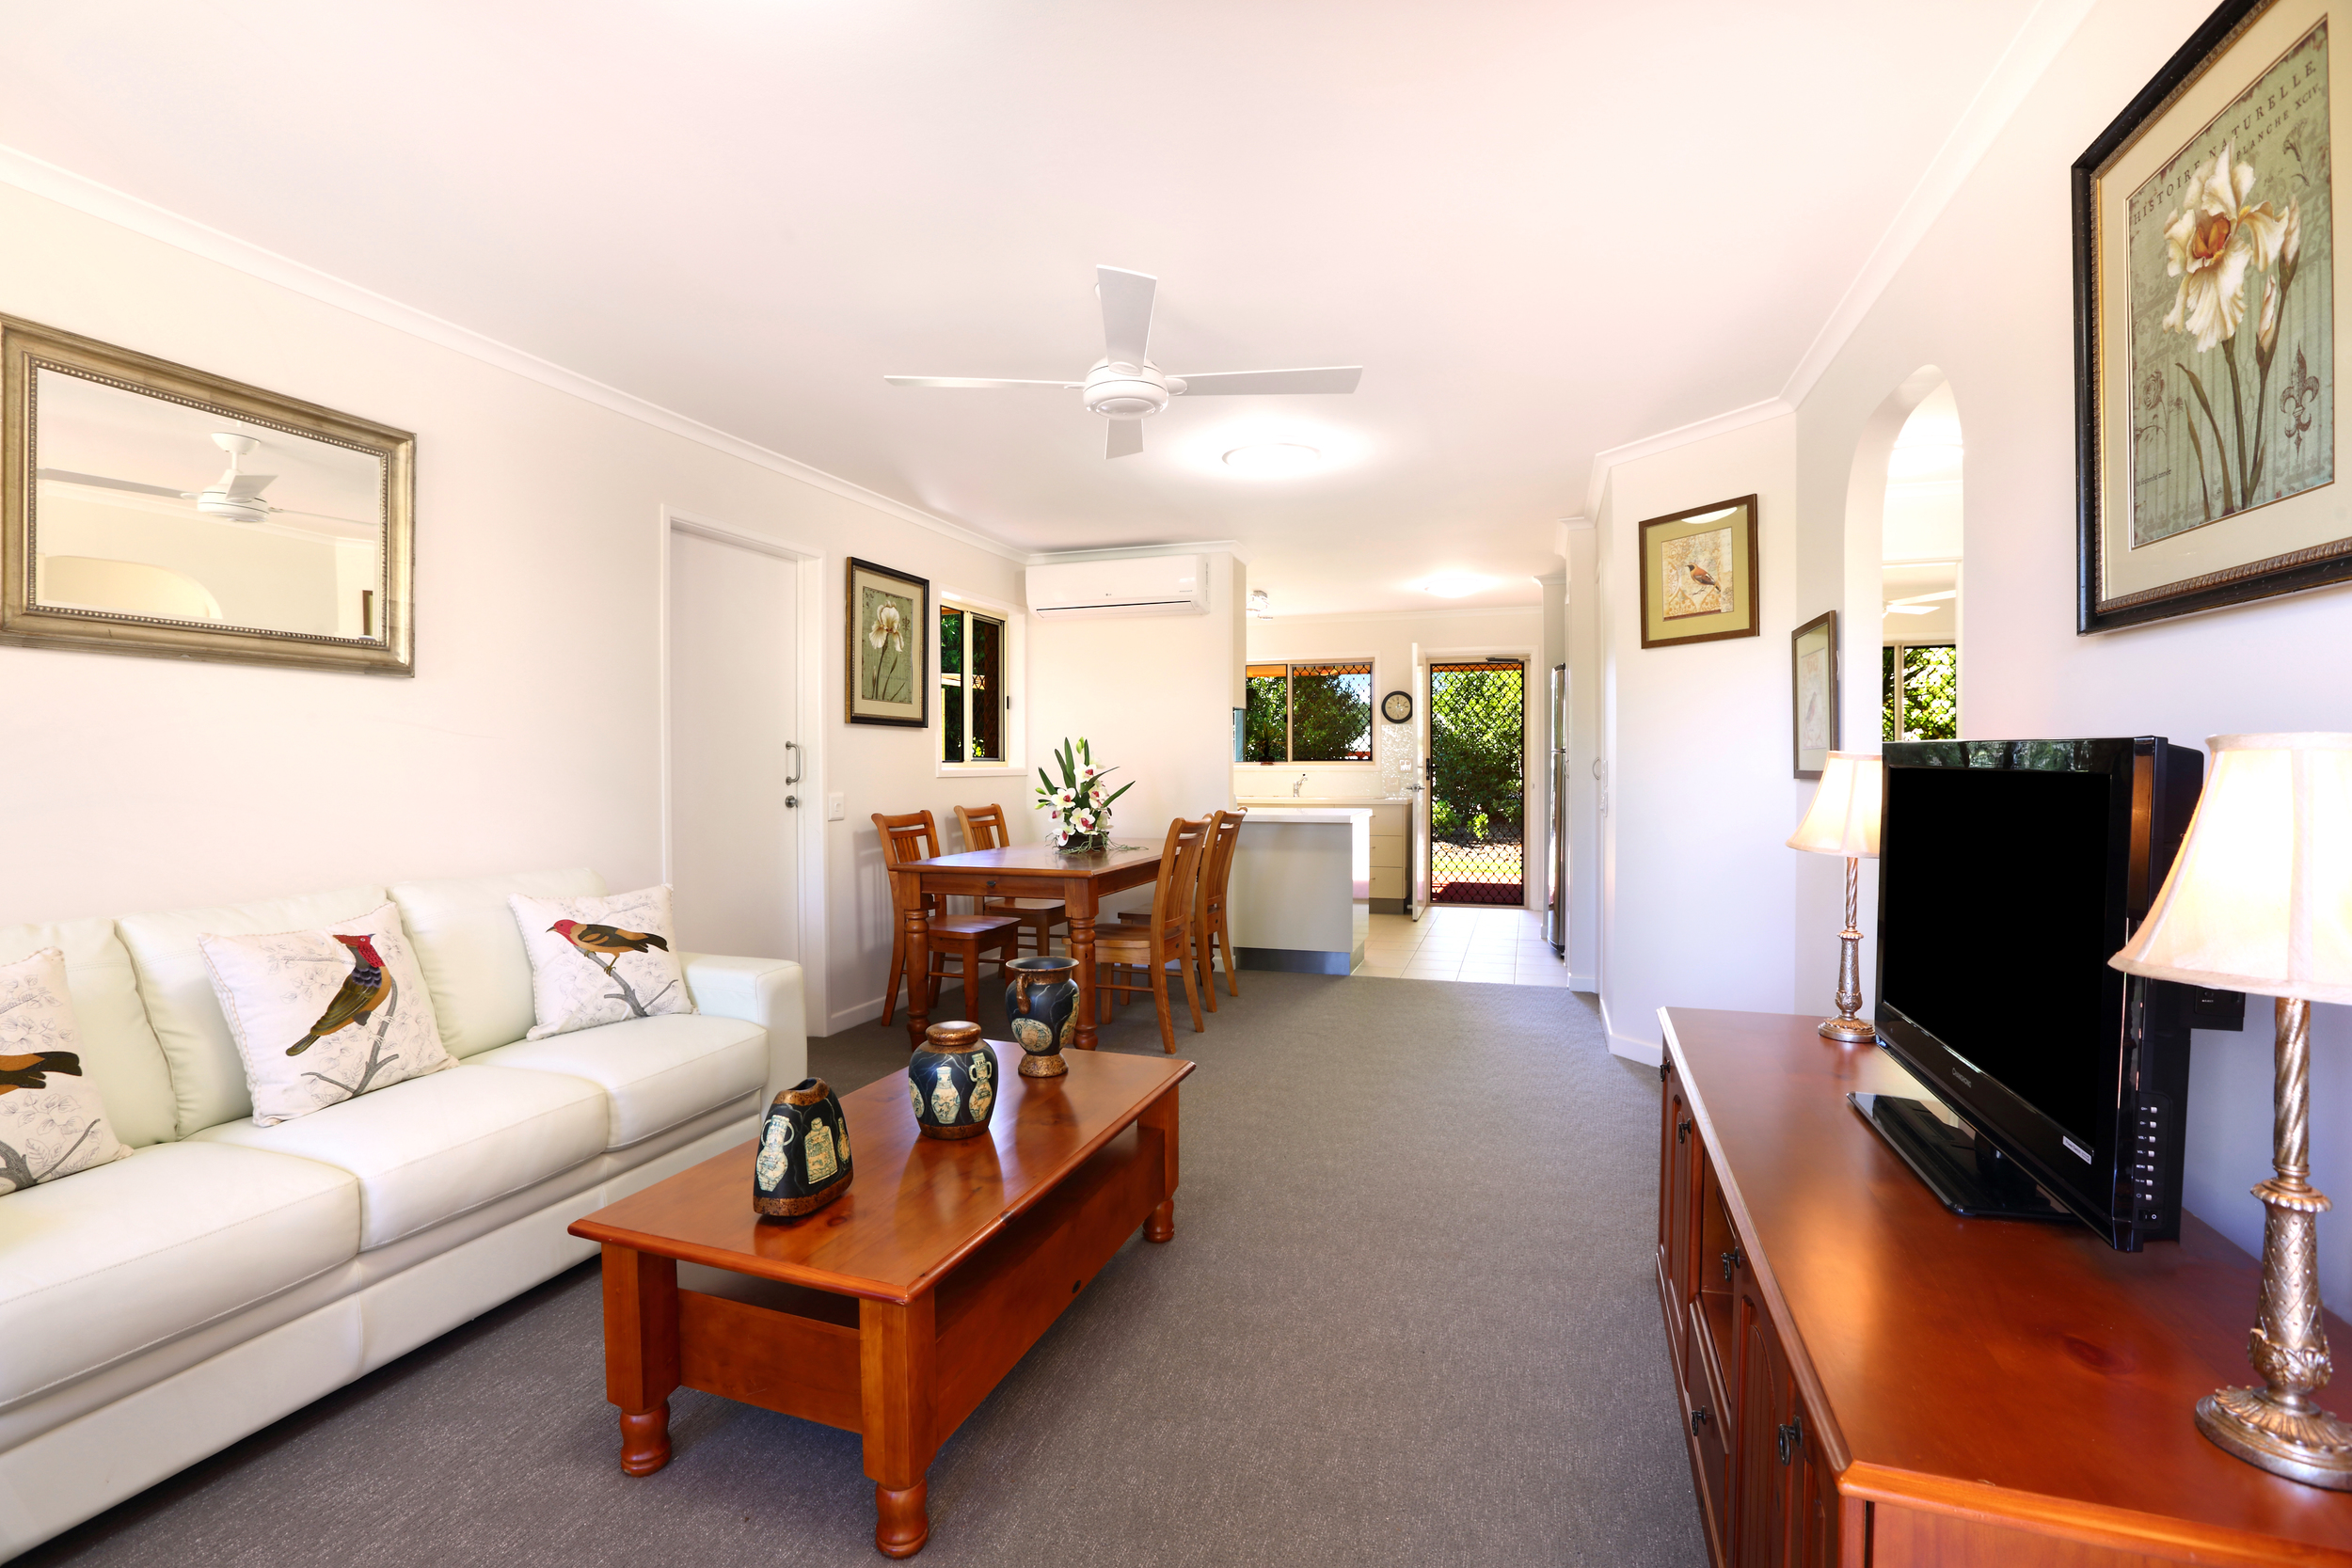 Sundale-retirement-communities-palmwoods2.jpg